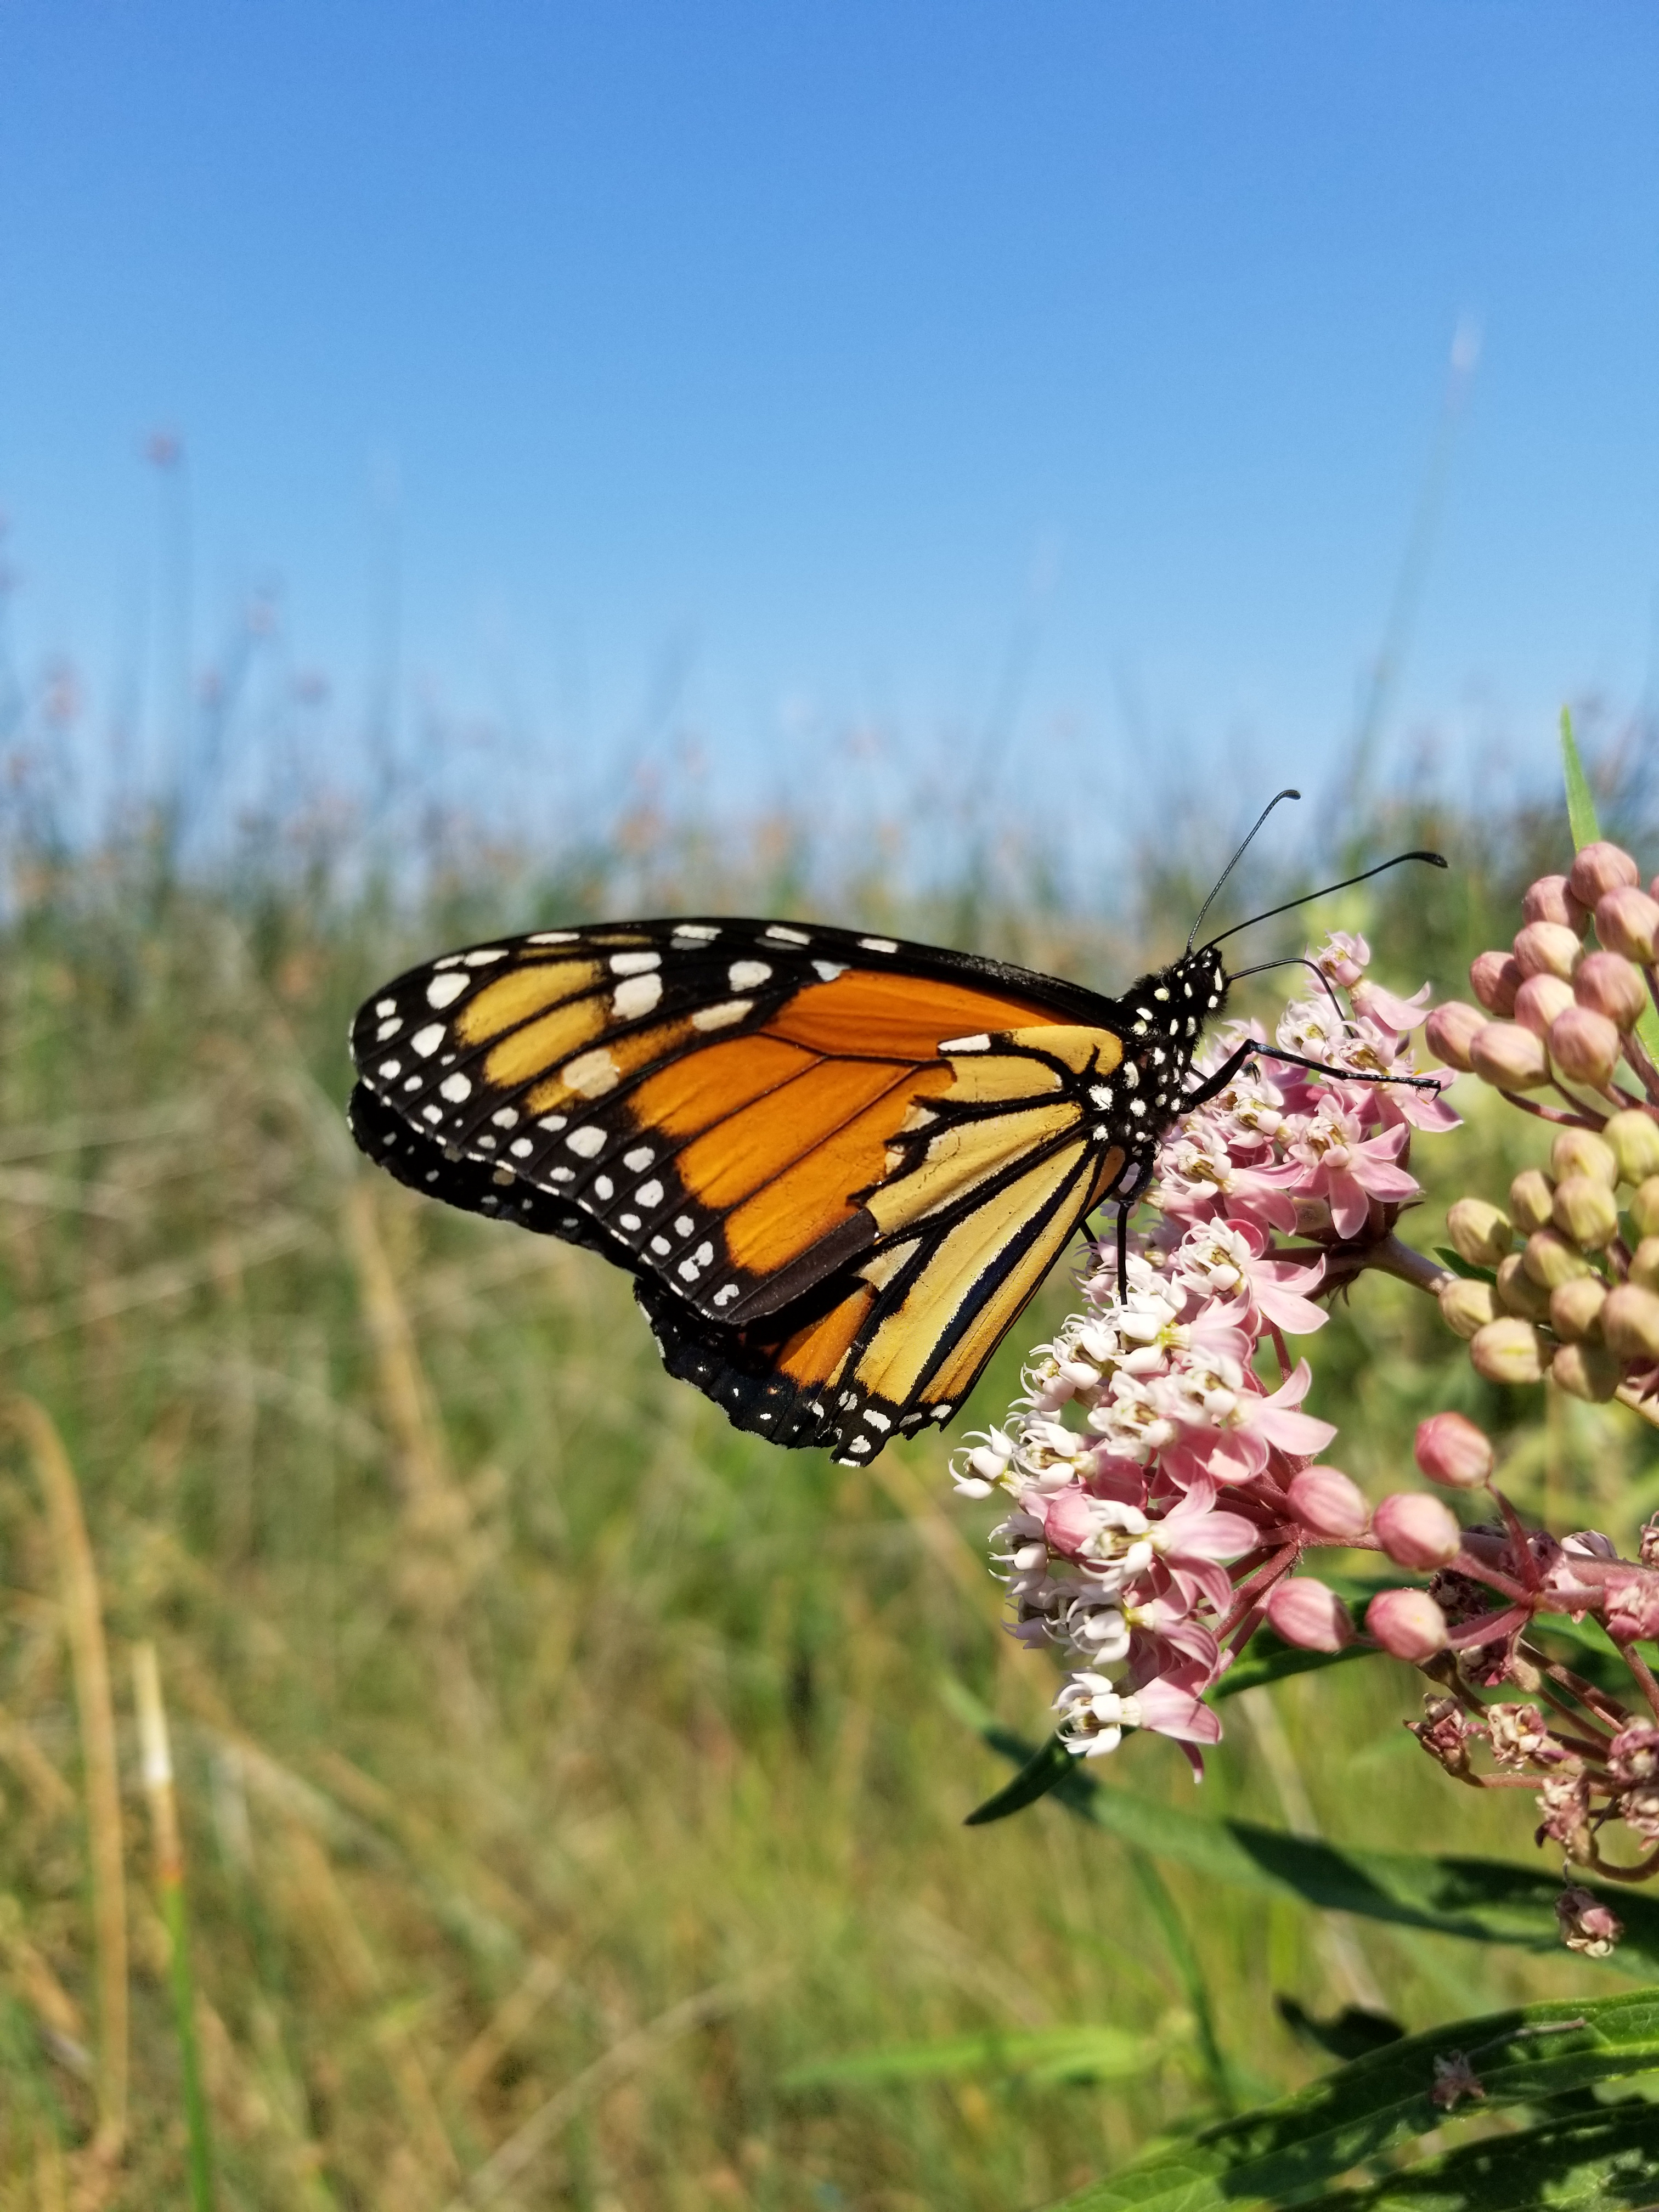 An orange monarch with a partially torn wing clutches a bright pink cluster of milkweed flowers, with an arid landscape and blue sky in the background.